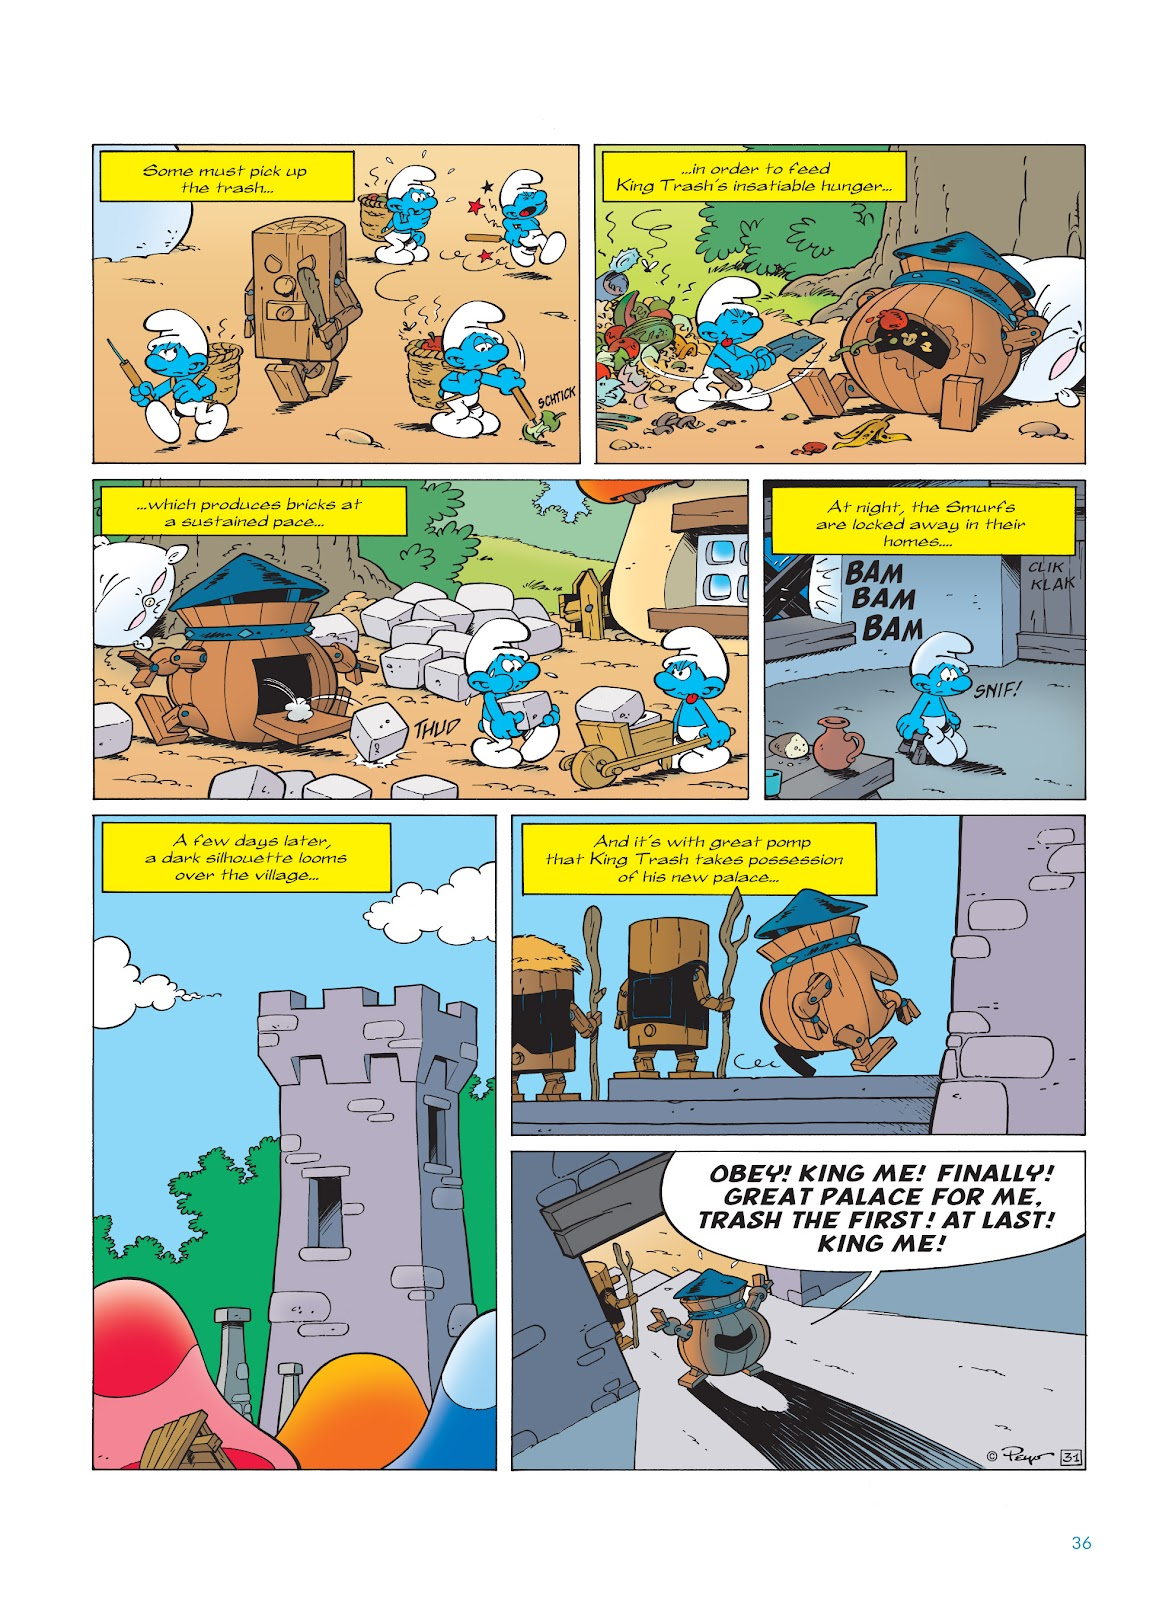 Read online The Smurfs comic -  Issue #23 - 36